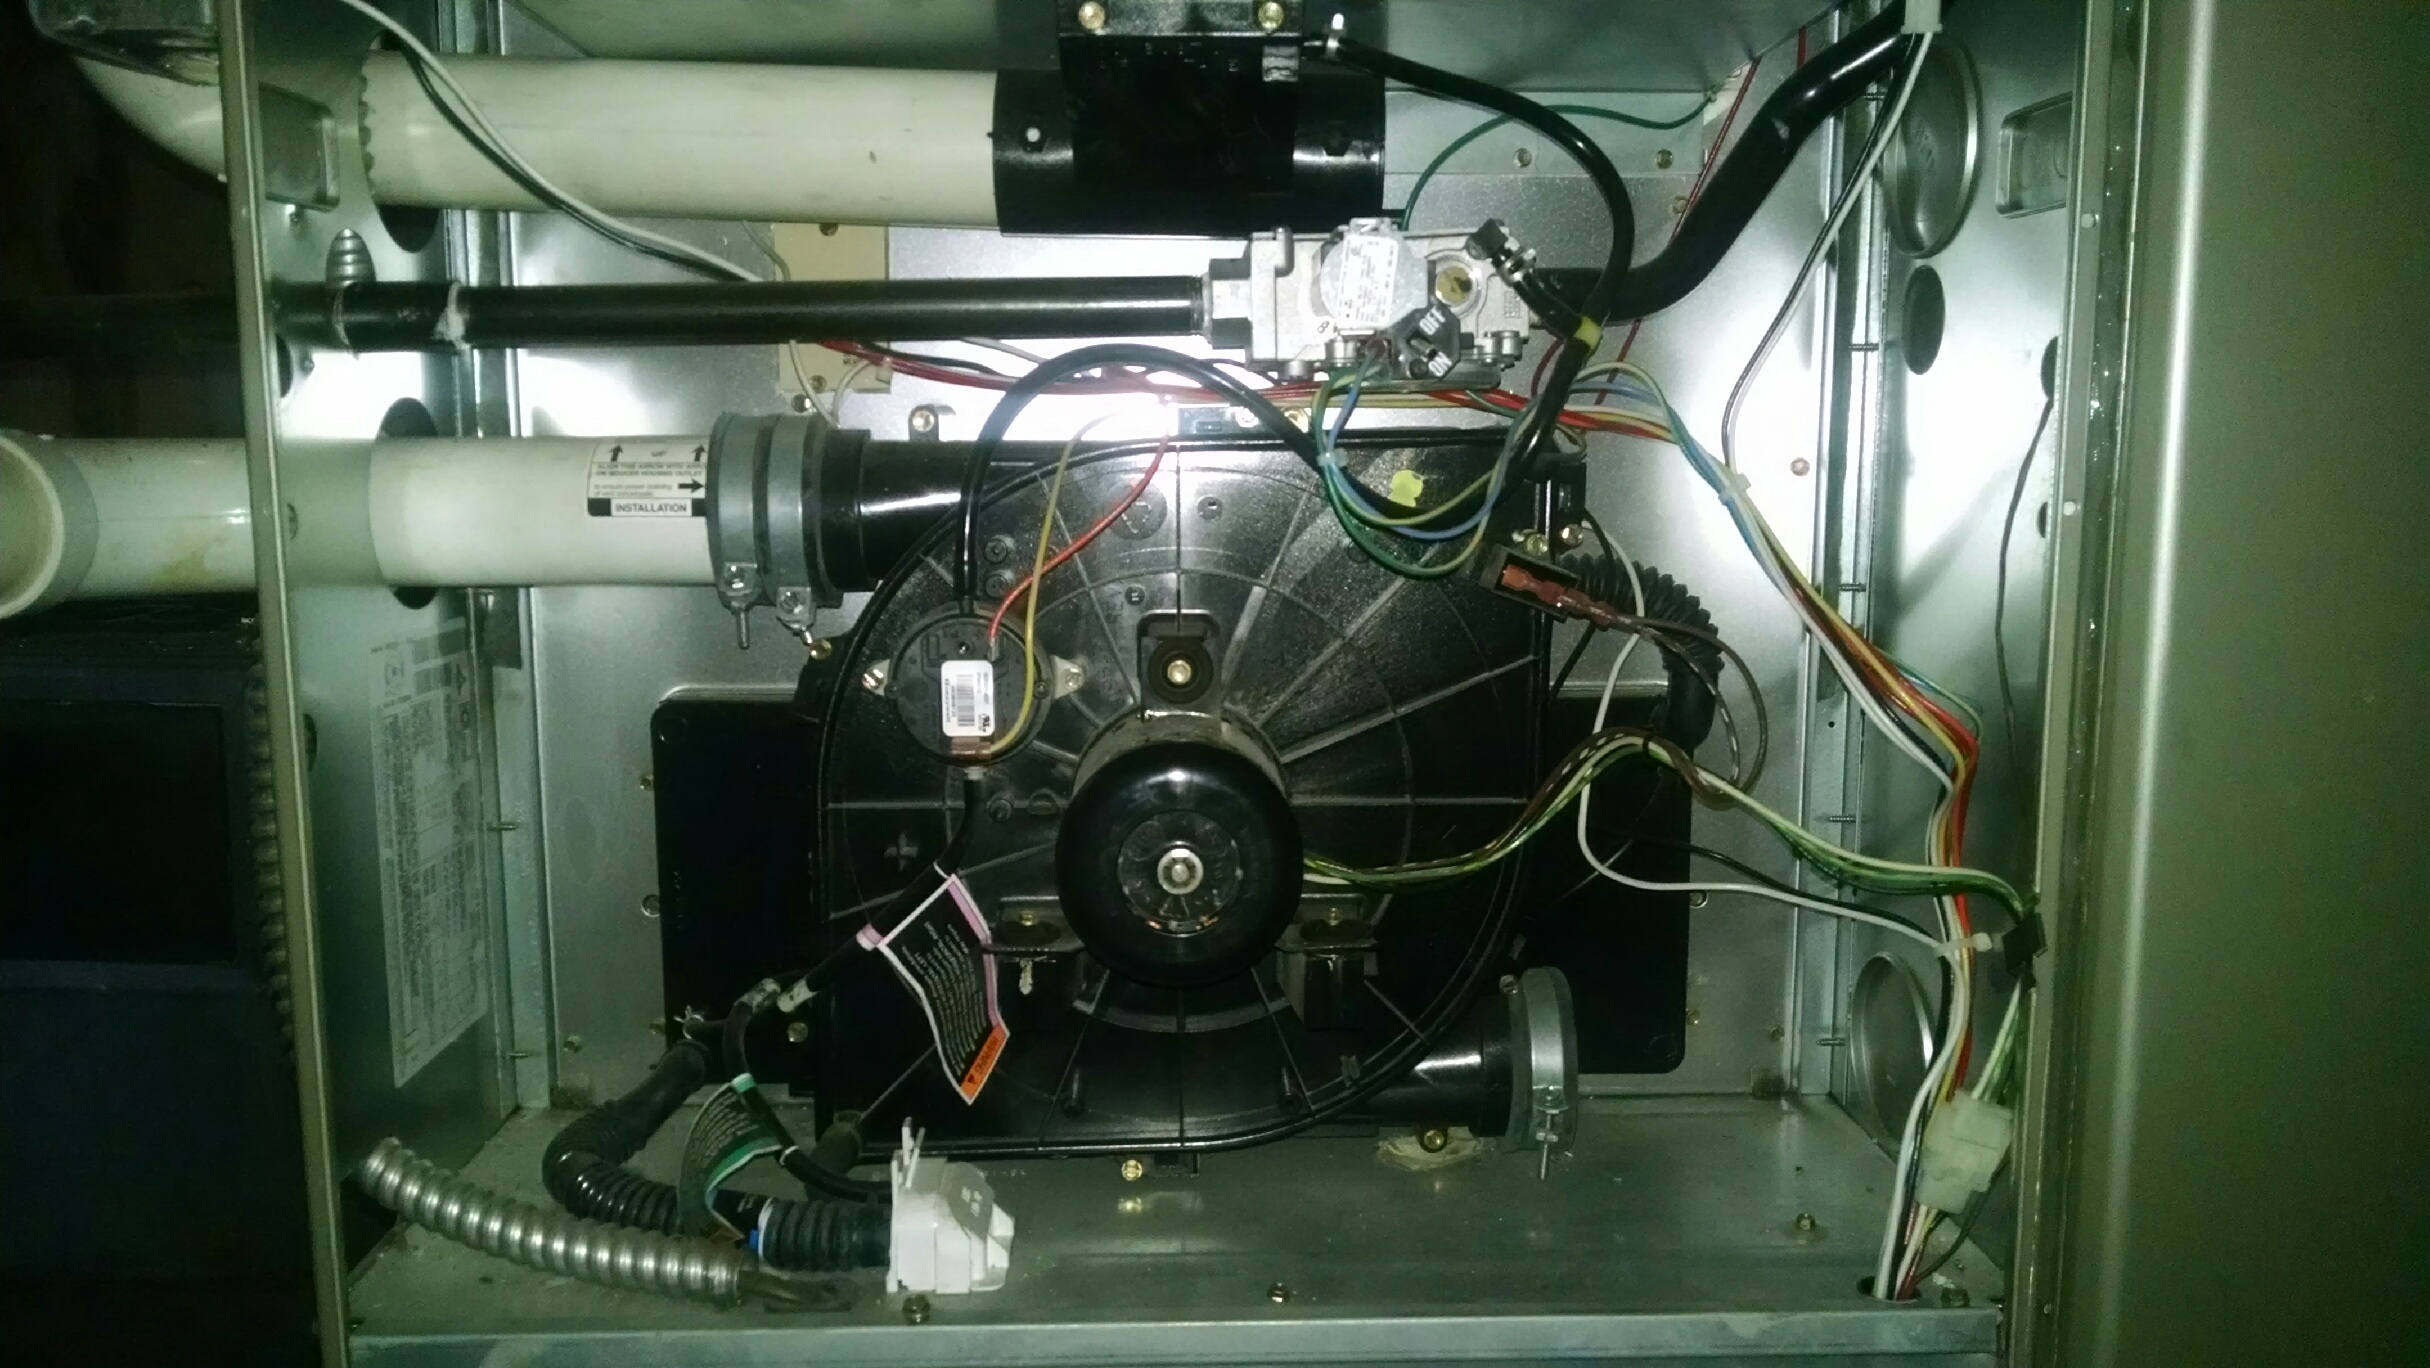 View of furnace electronic & blower guts